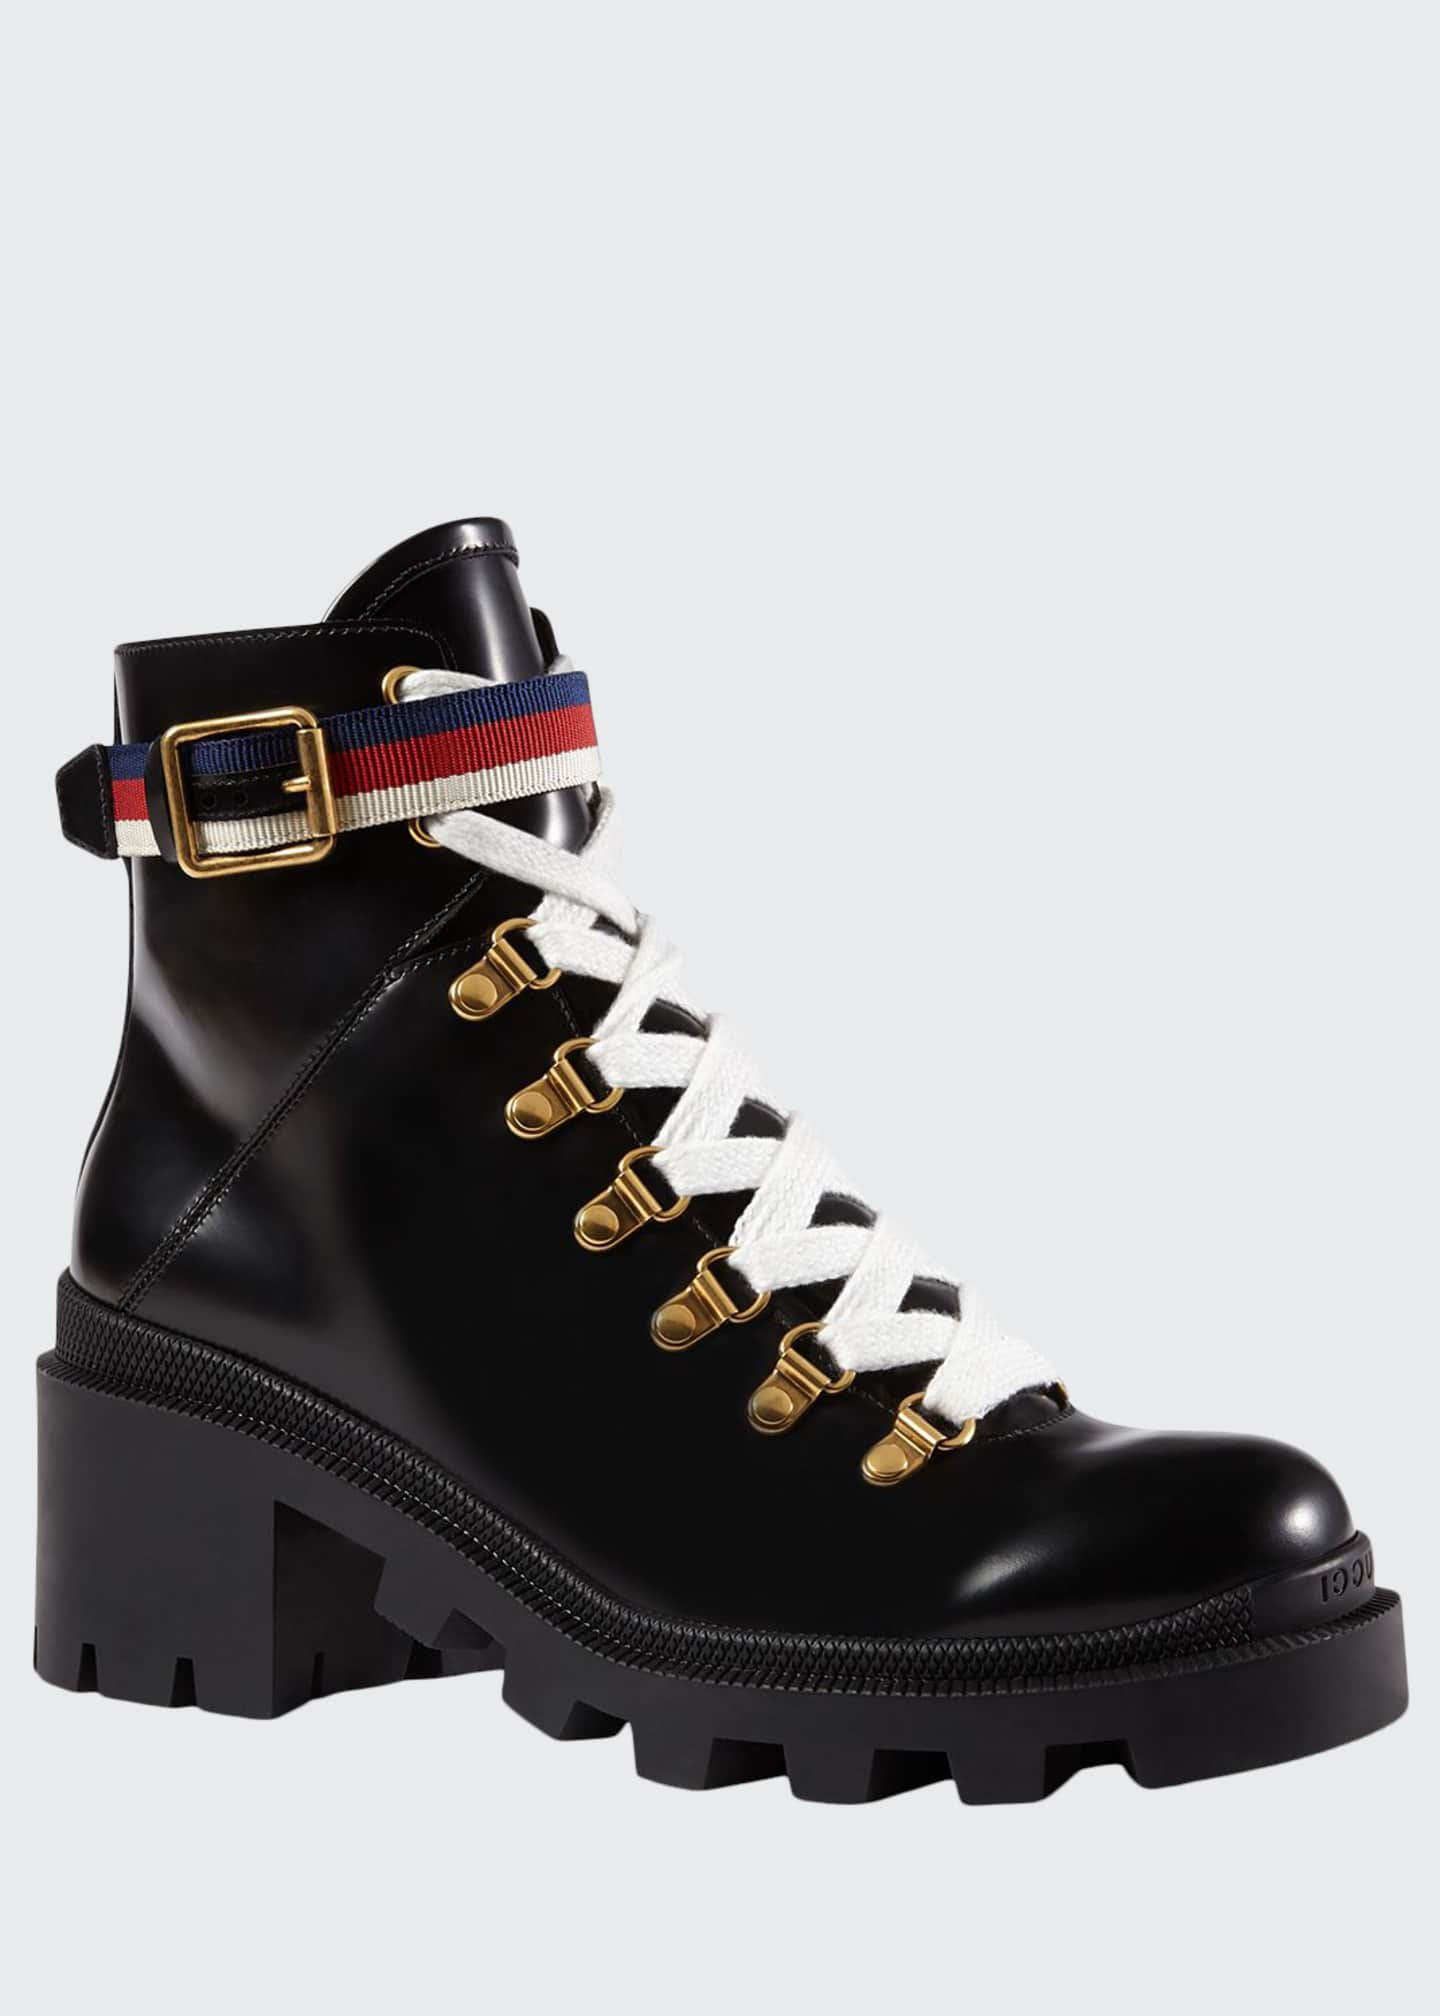 Gucci Leather Combat Boot